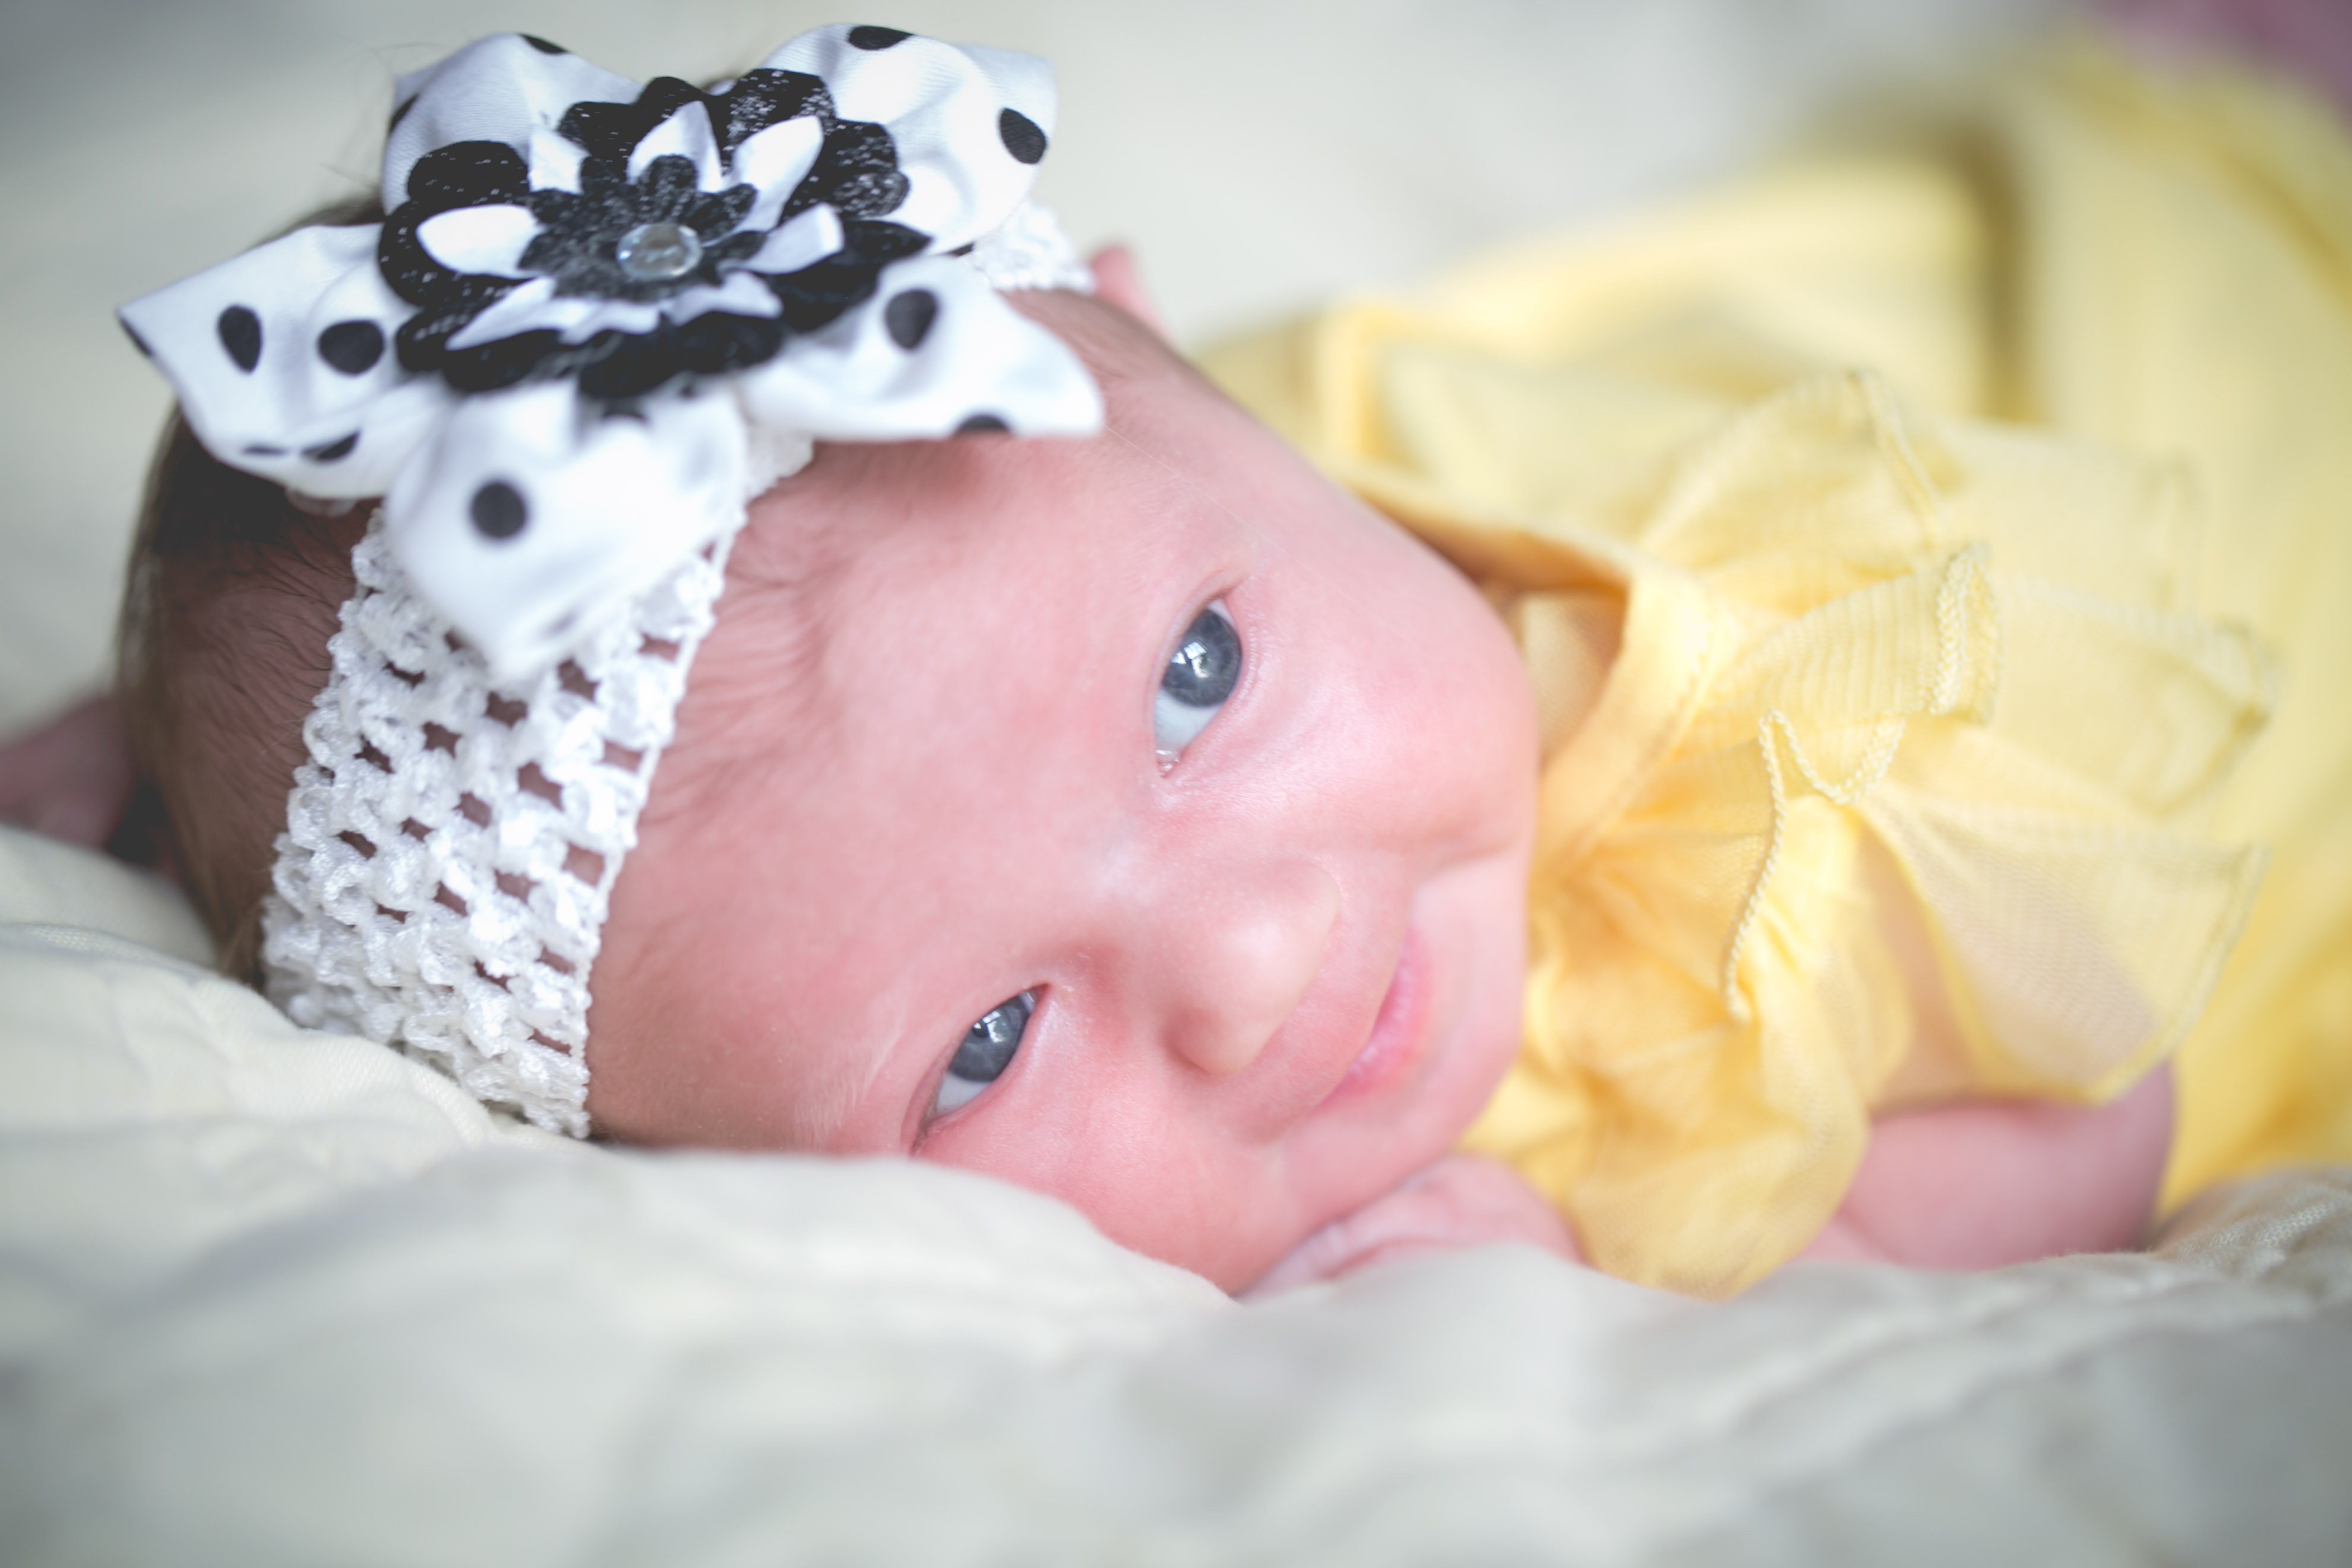 www.fivefivephotos.com_2014_Infant_Kinnett_Fixed-7